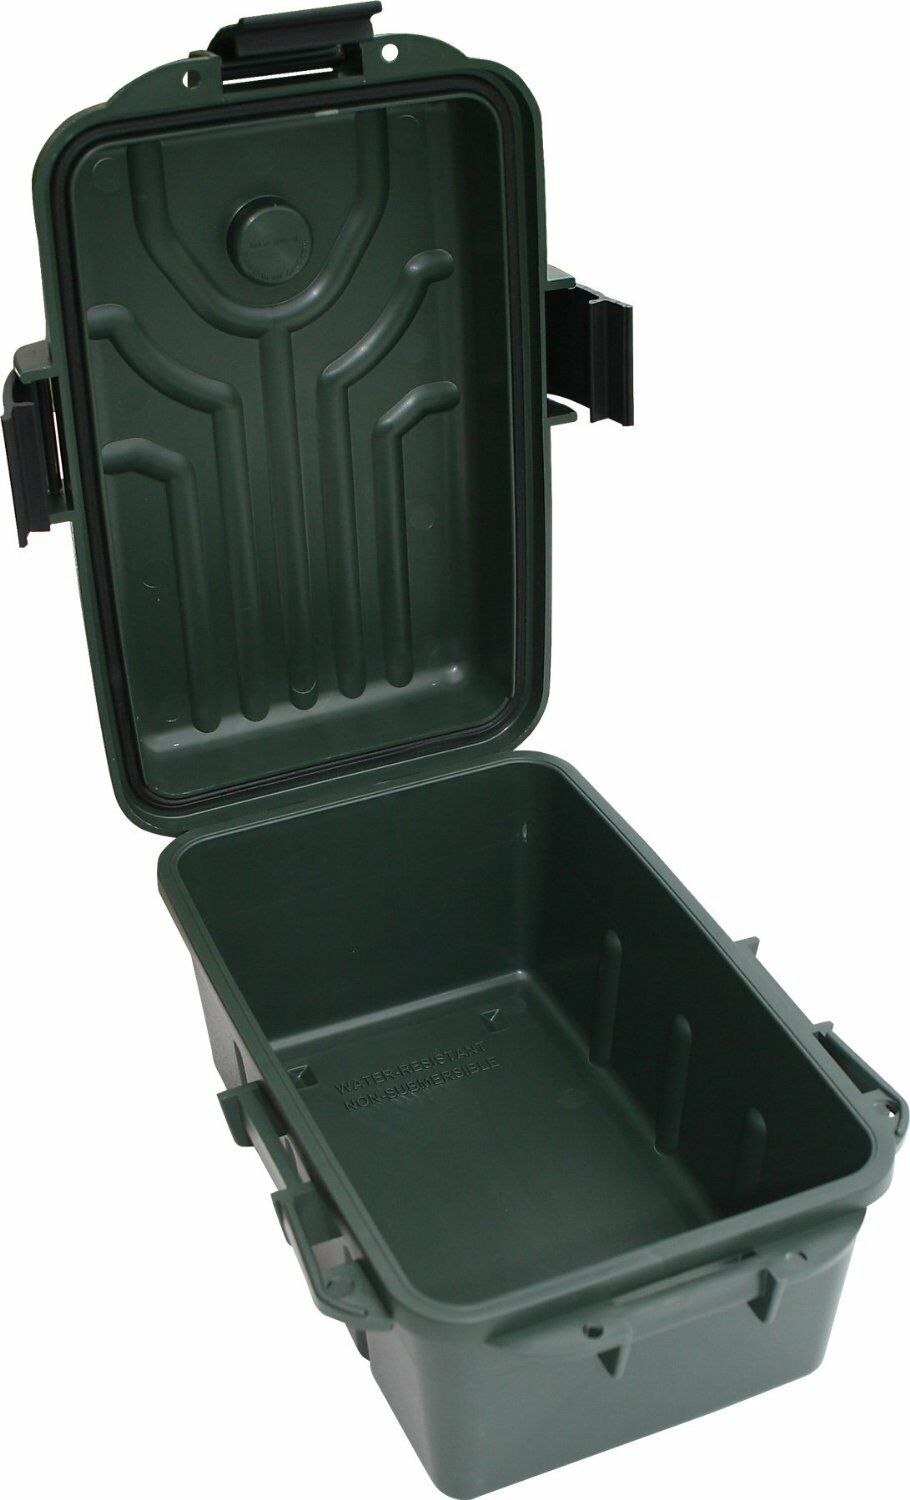 WATER RESISTANT SURVIVOR DRY KIT BOX for SAS CASE army MTM CASE GARD large